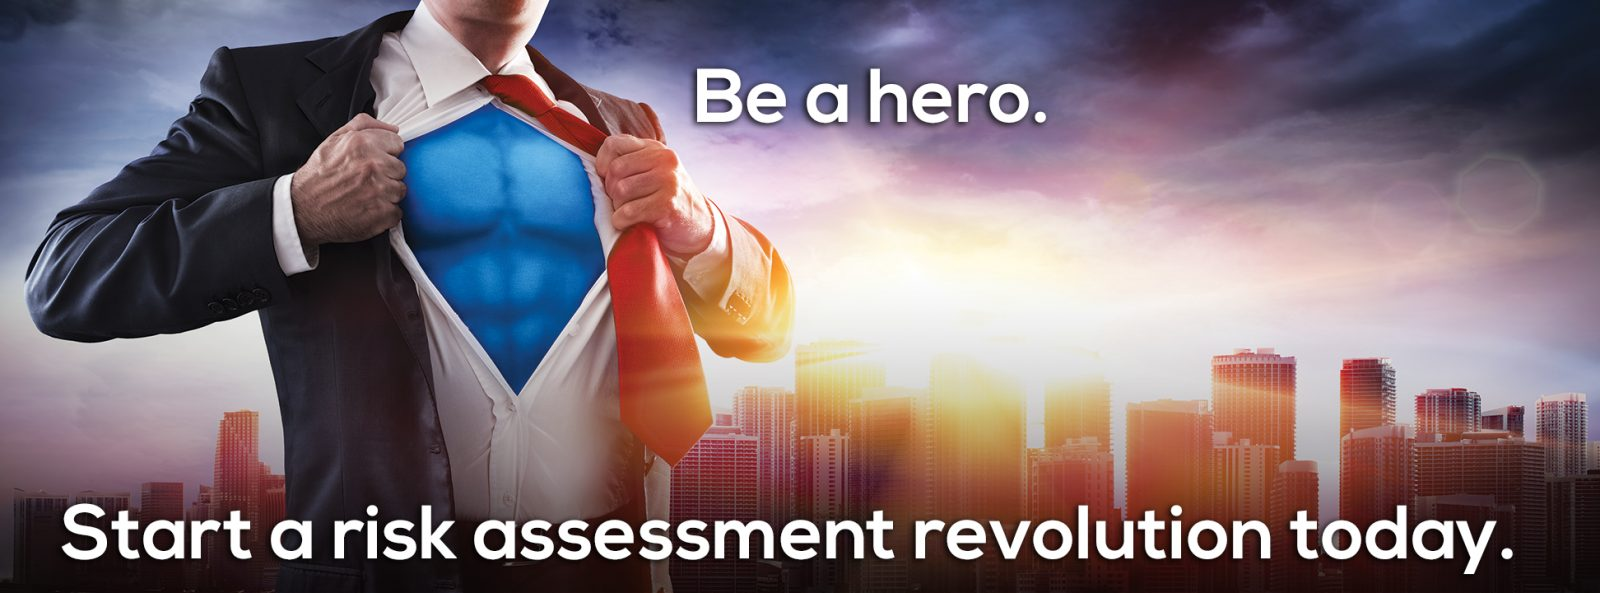 office-superhero-cybersecurity-risk-assessment